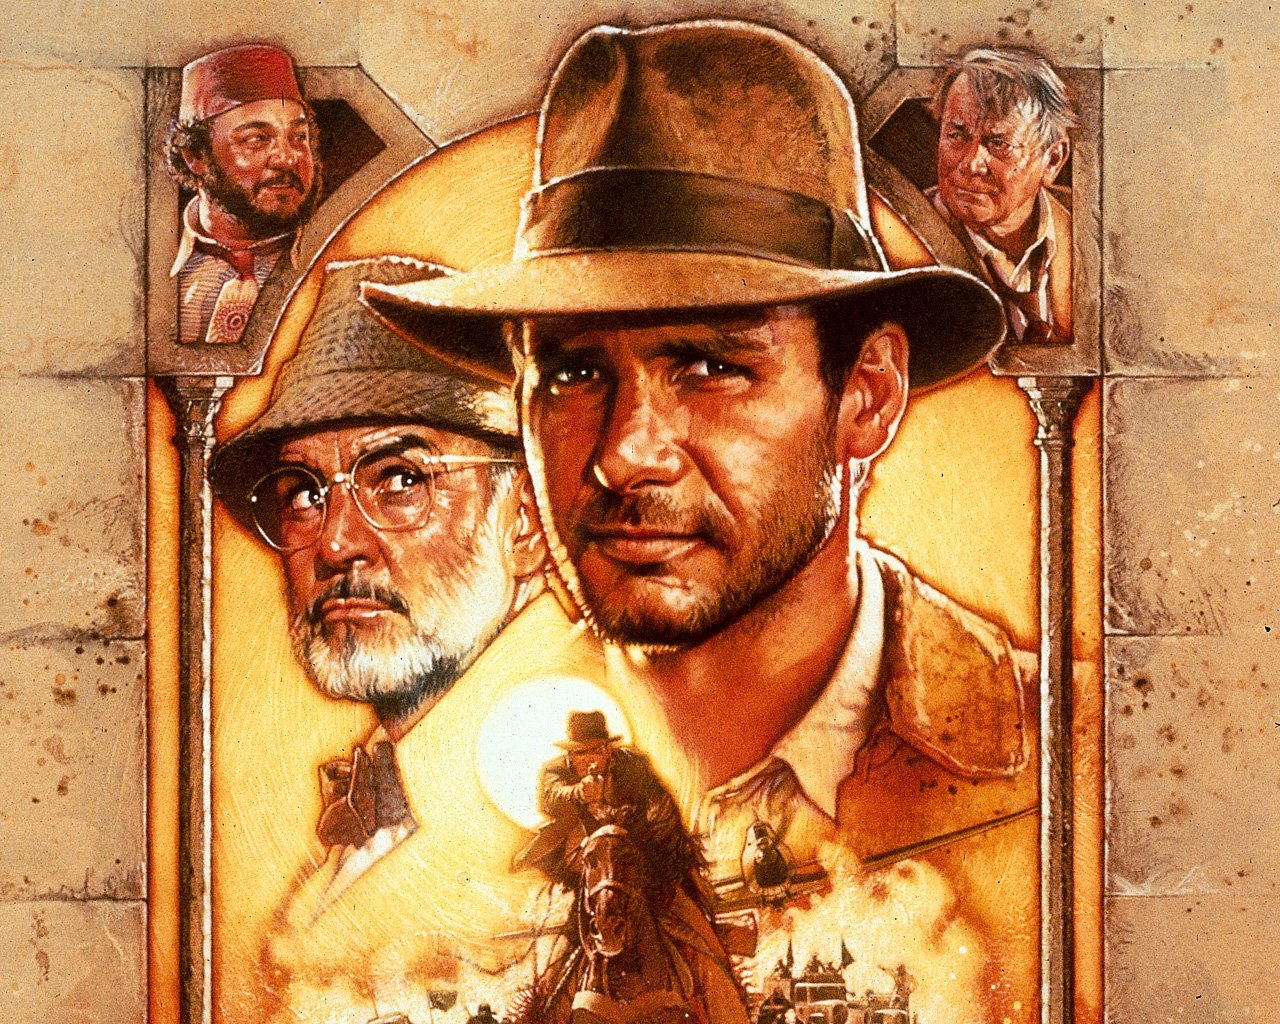 Desktop Wallpapers Indiana Jones Indiana Jones and the Last Crusade film Movies